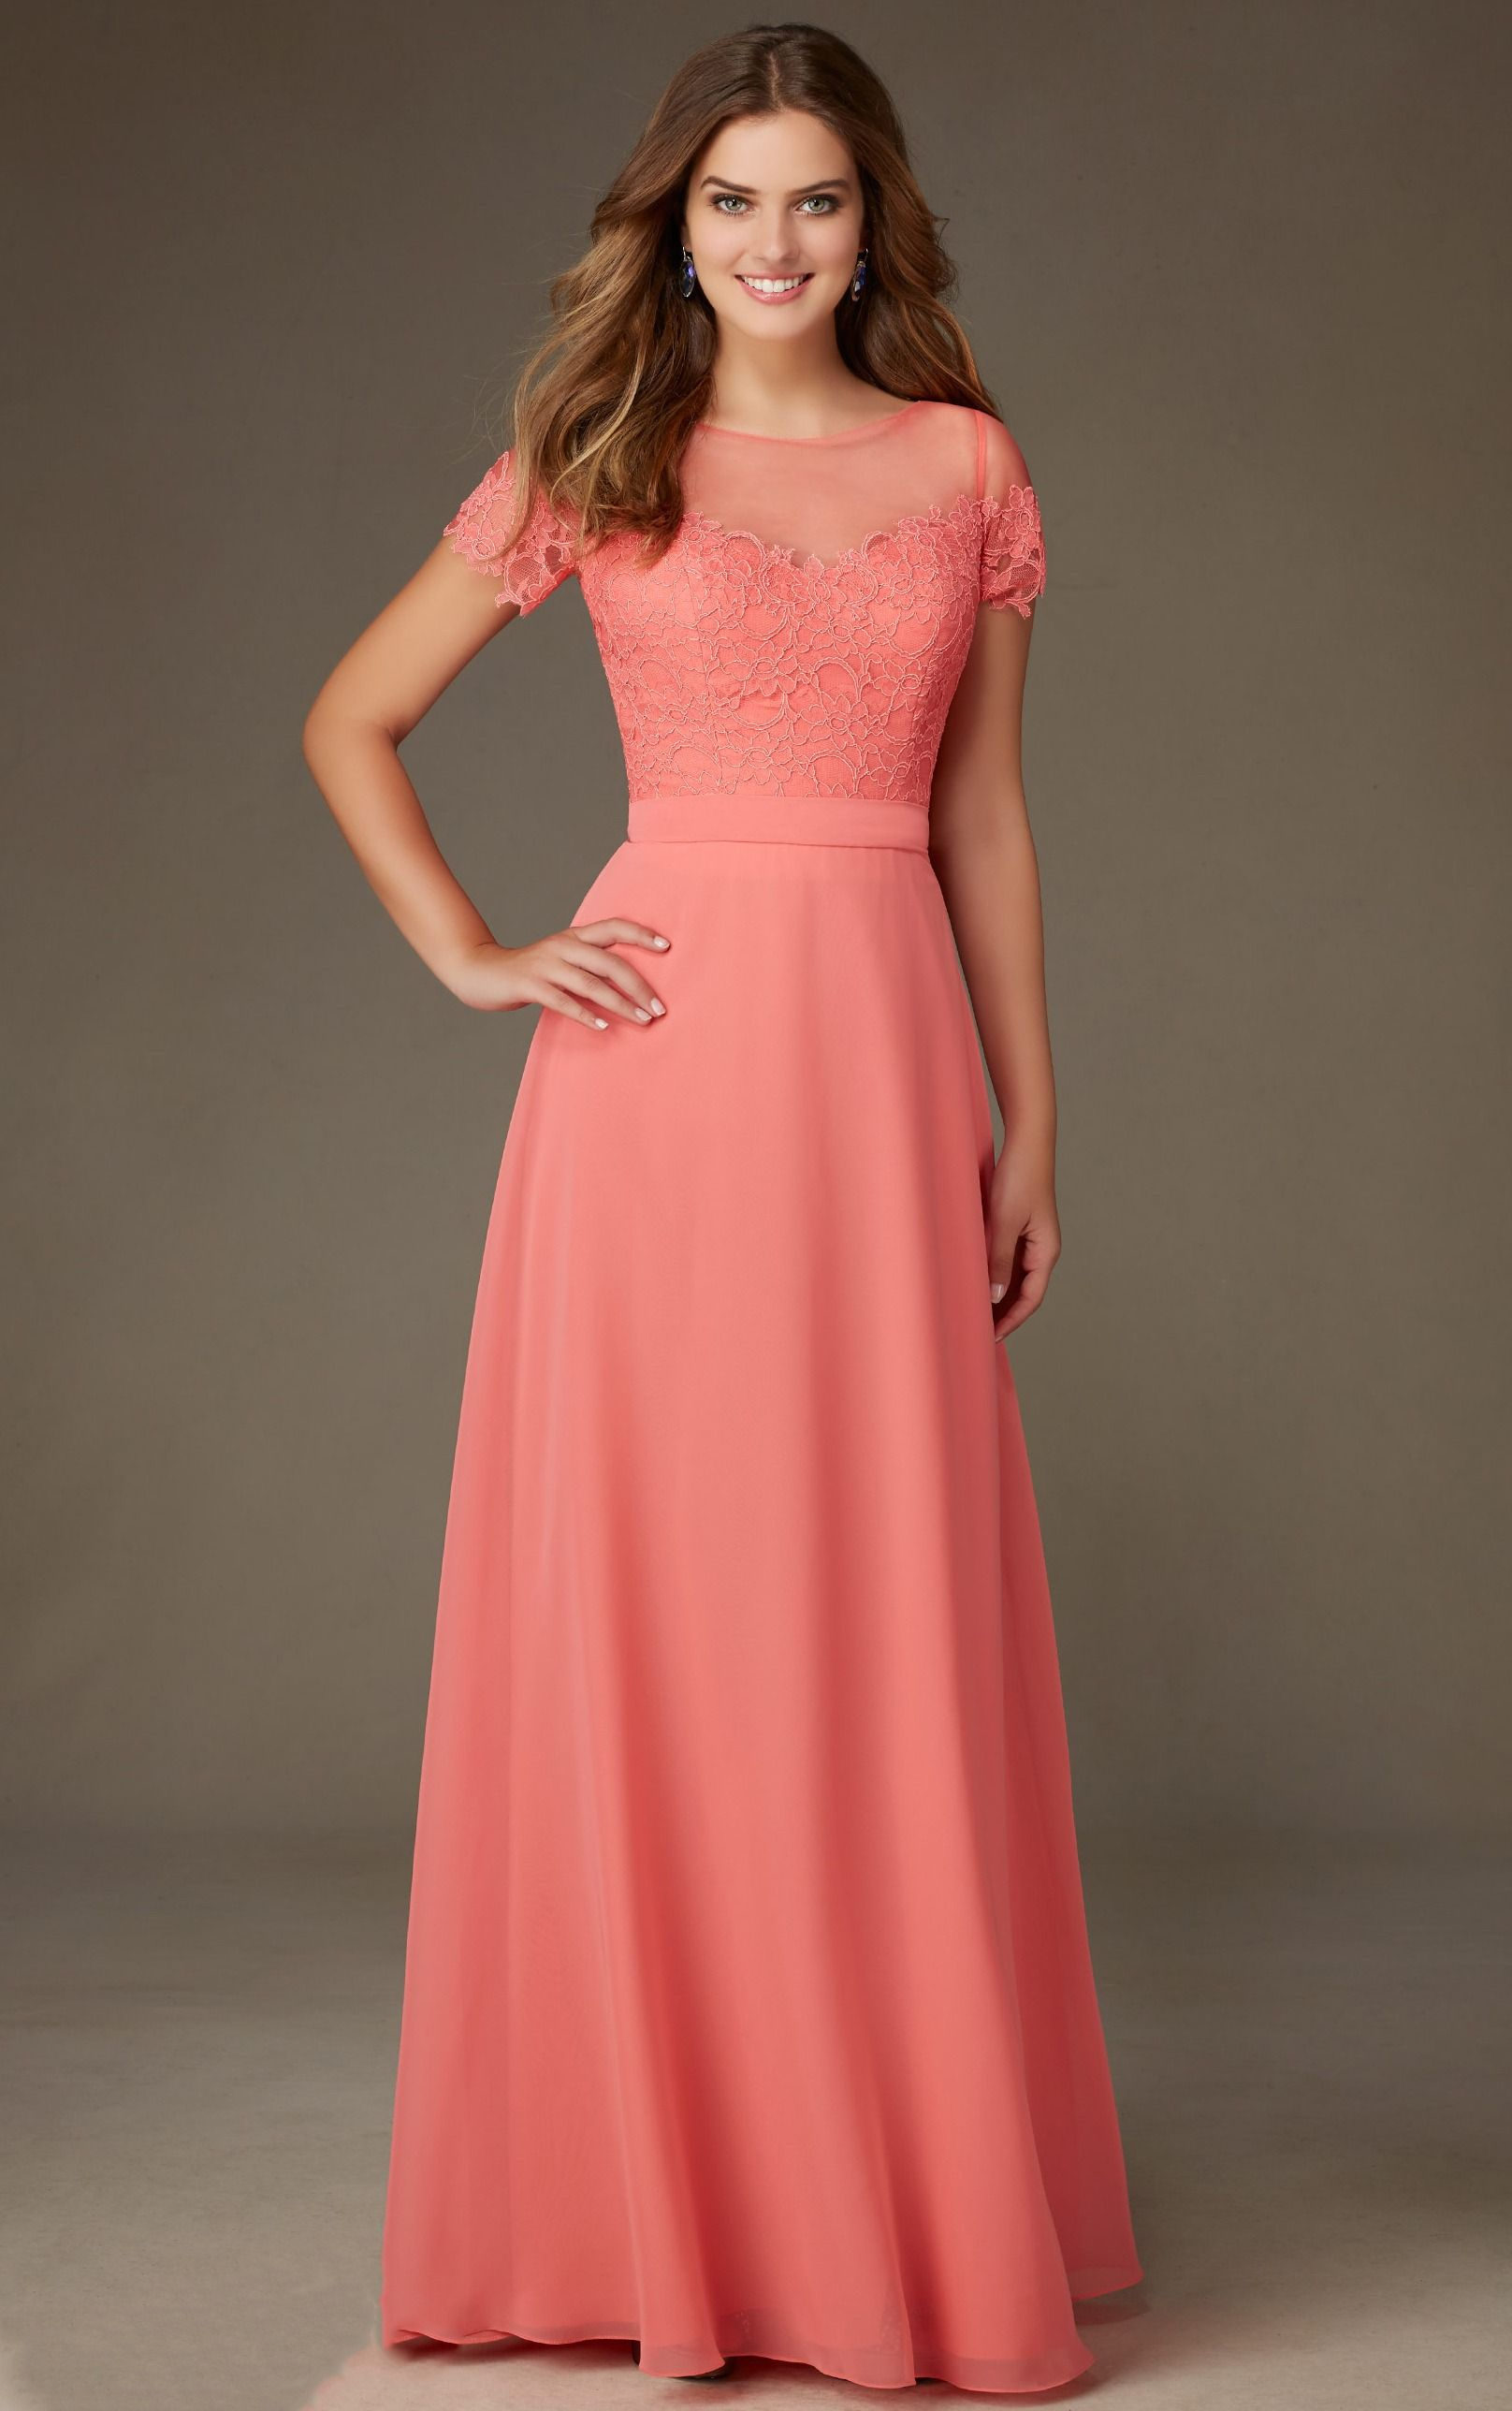 9816dd07588d Coral Lace Bodice Short Sleeved Long A-line Chiffon Bridesmaid Dress ...